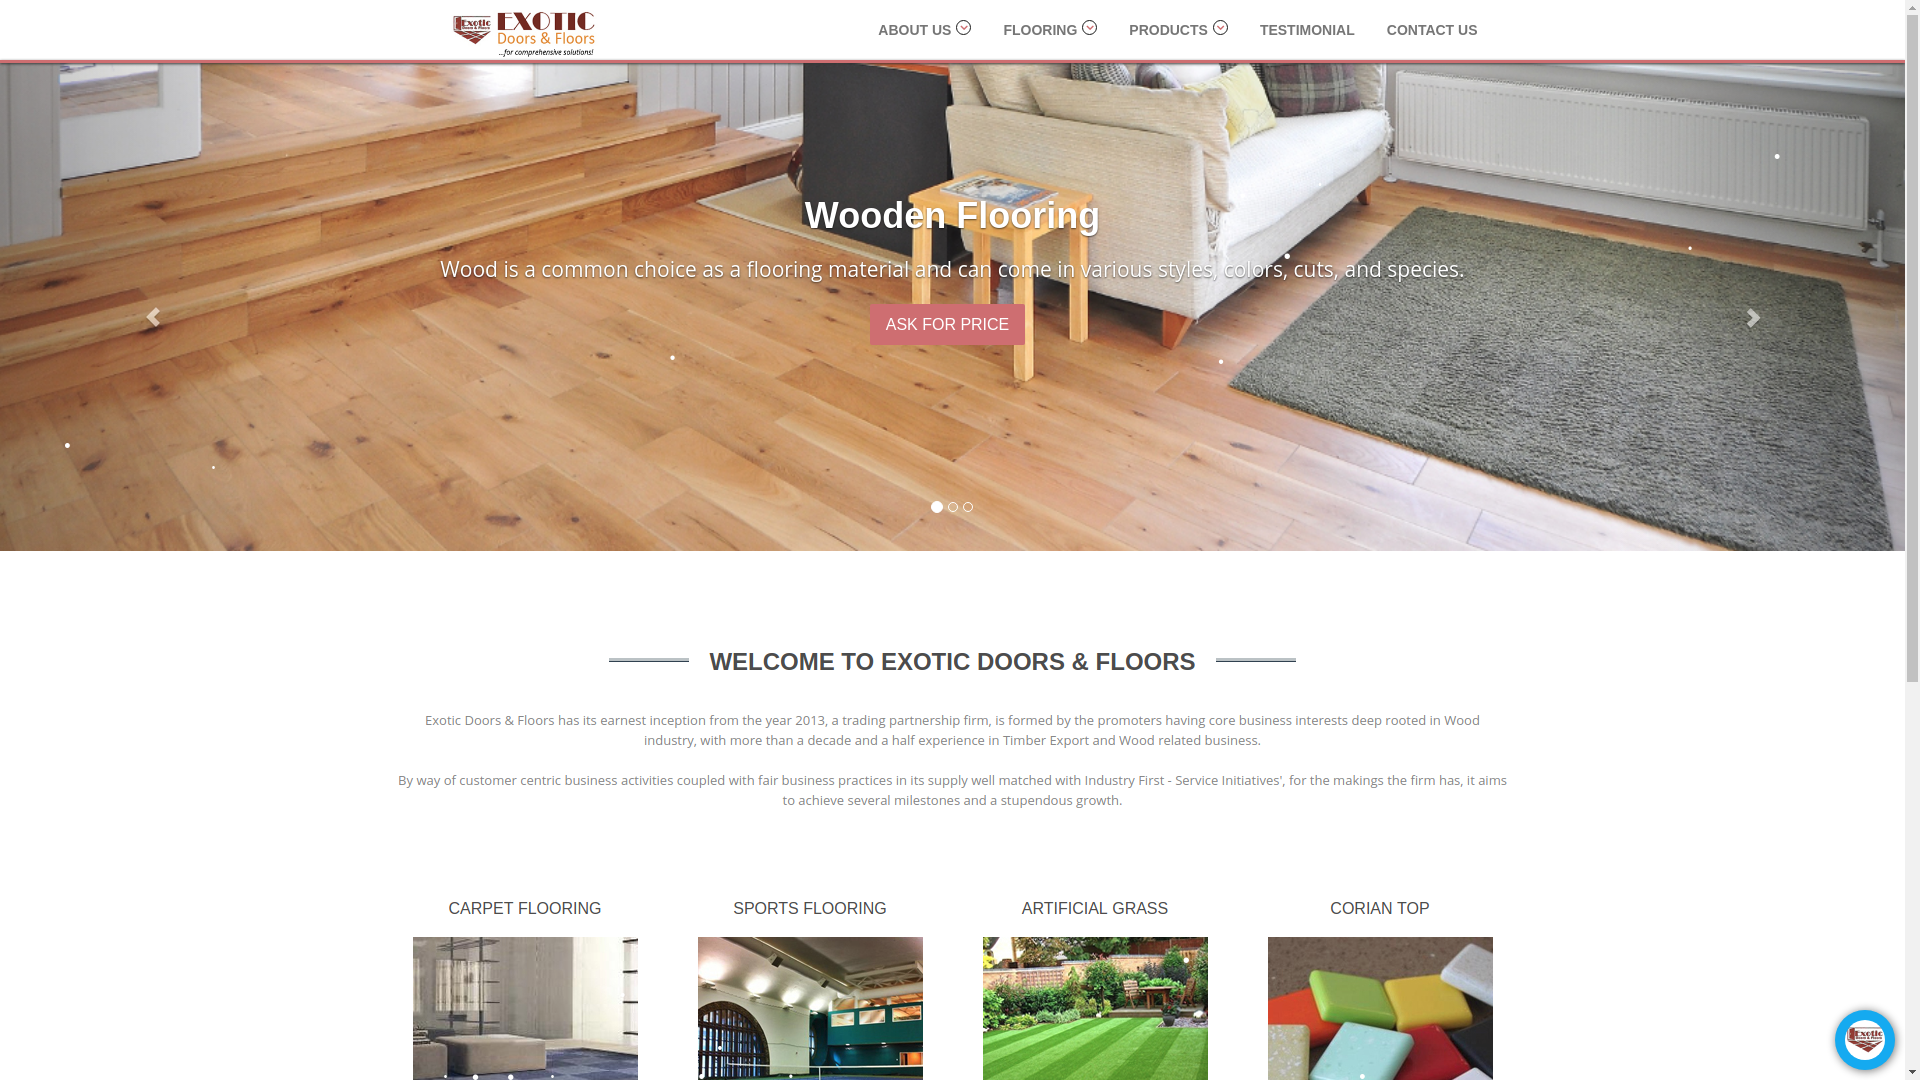 Exotic Doors & Floors JKL Portfolio